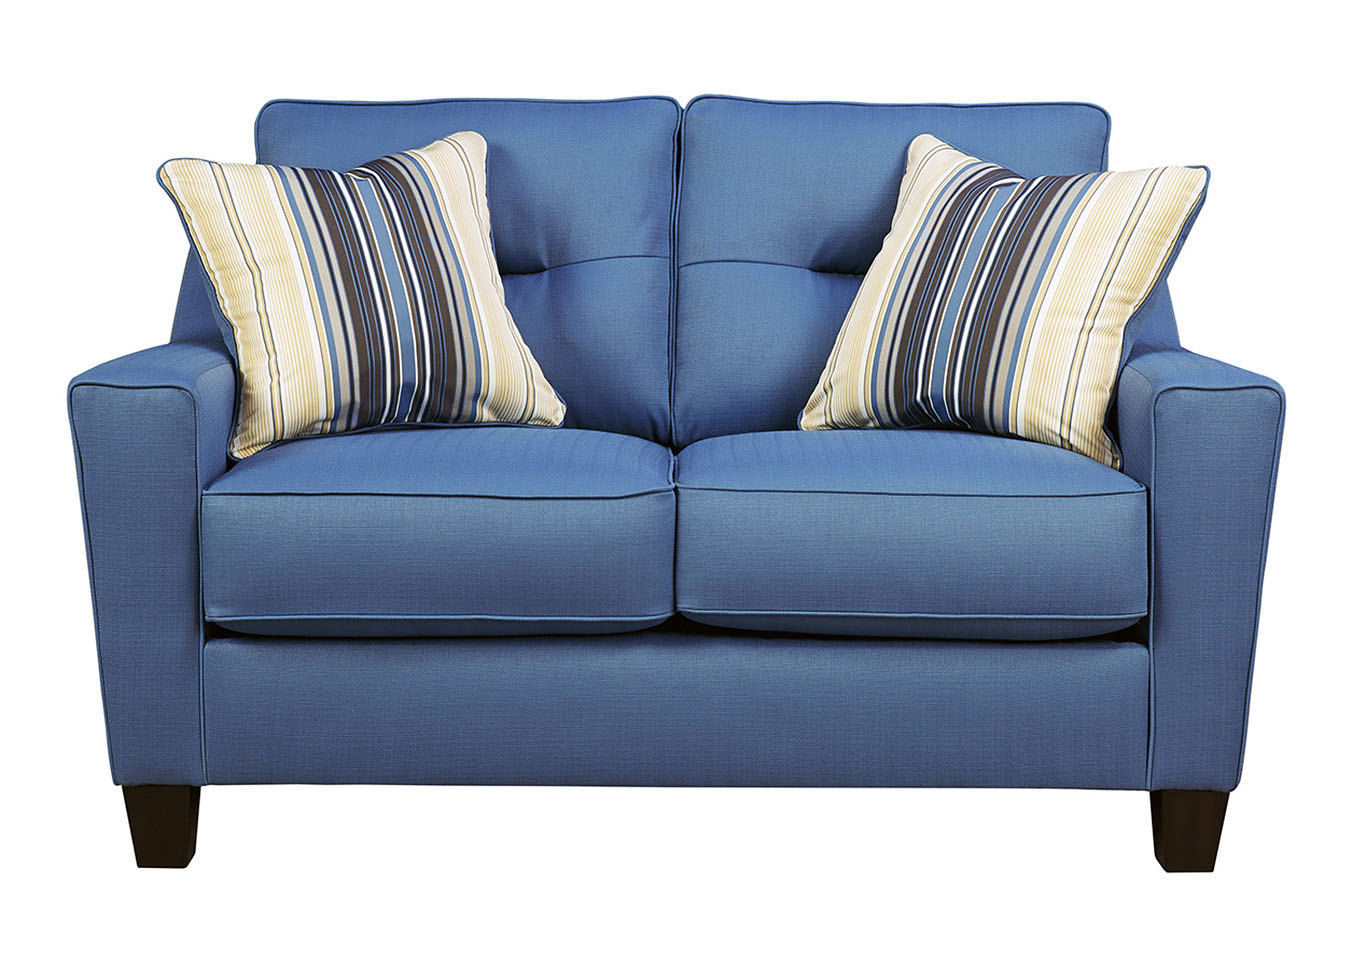 Newman Furniture Of Elgin Forsan Nuvella Blue Loveseat